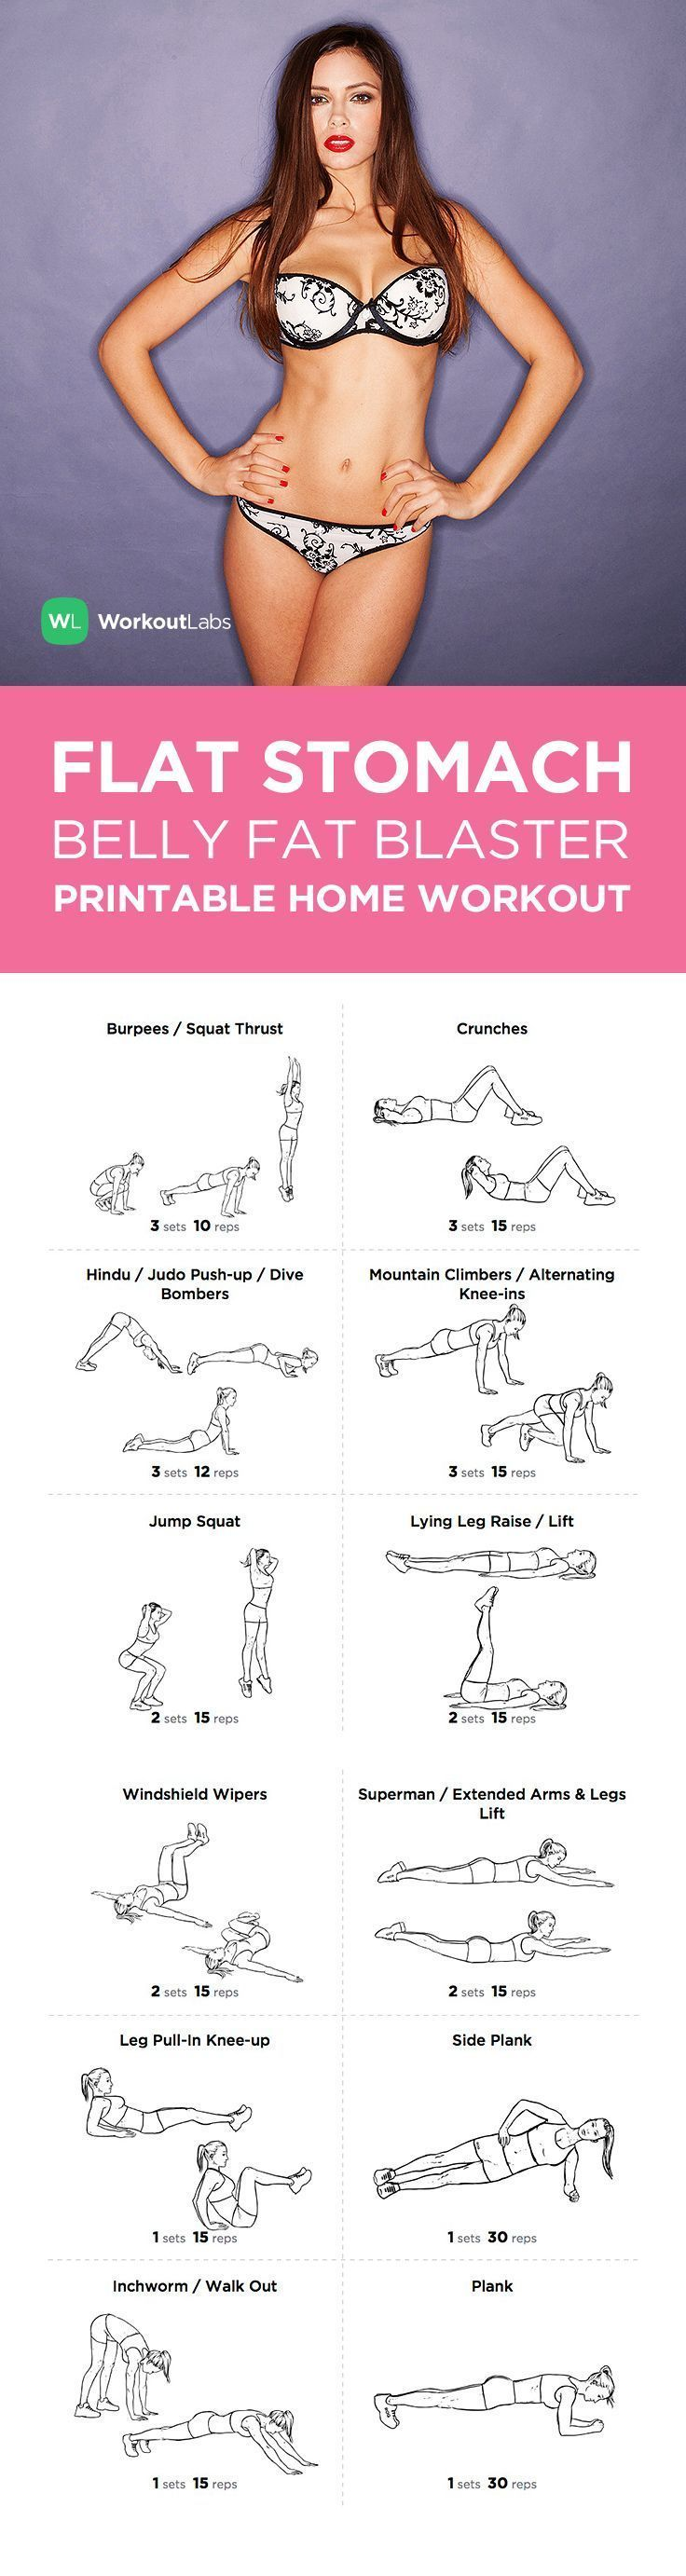 12 Killer Flat Stomach Workout You Can Do At Home. Need to lose that belly fat? Looking for good flat stomach workout that you can do at home? Well, you: